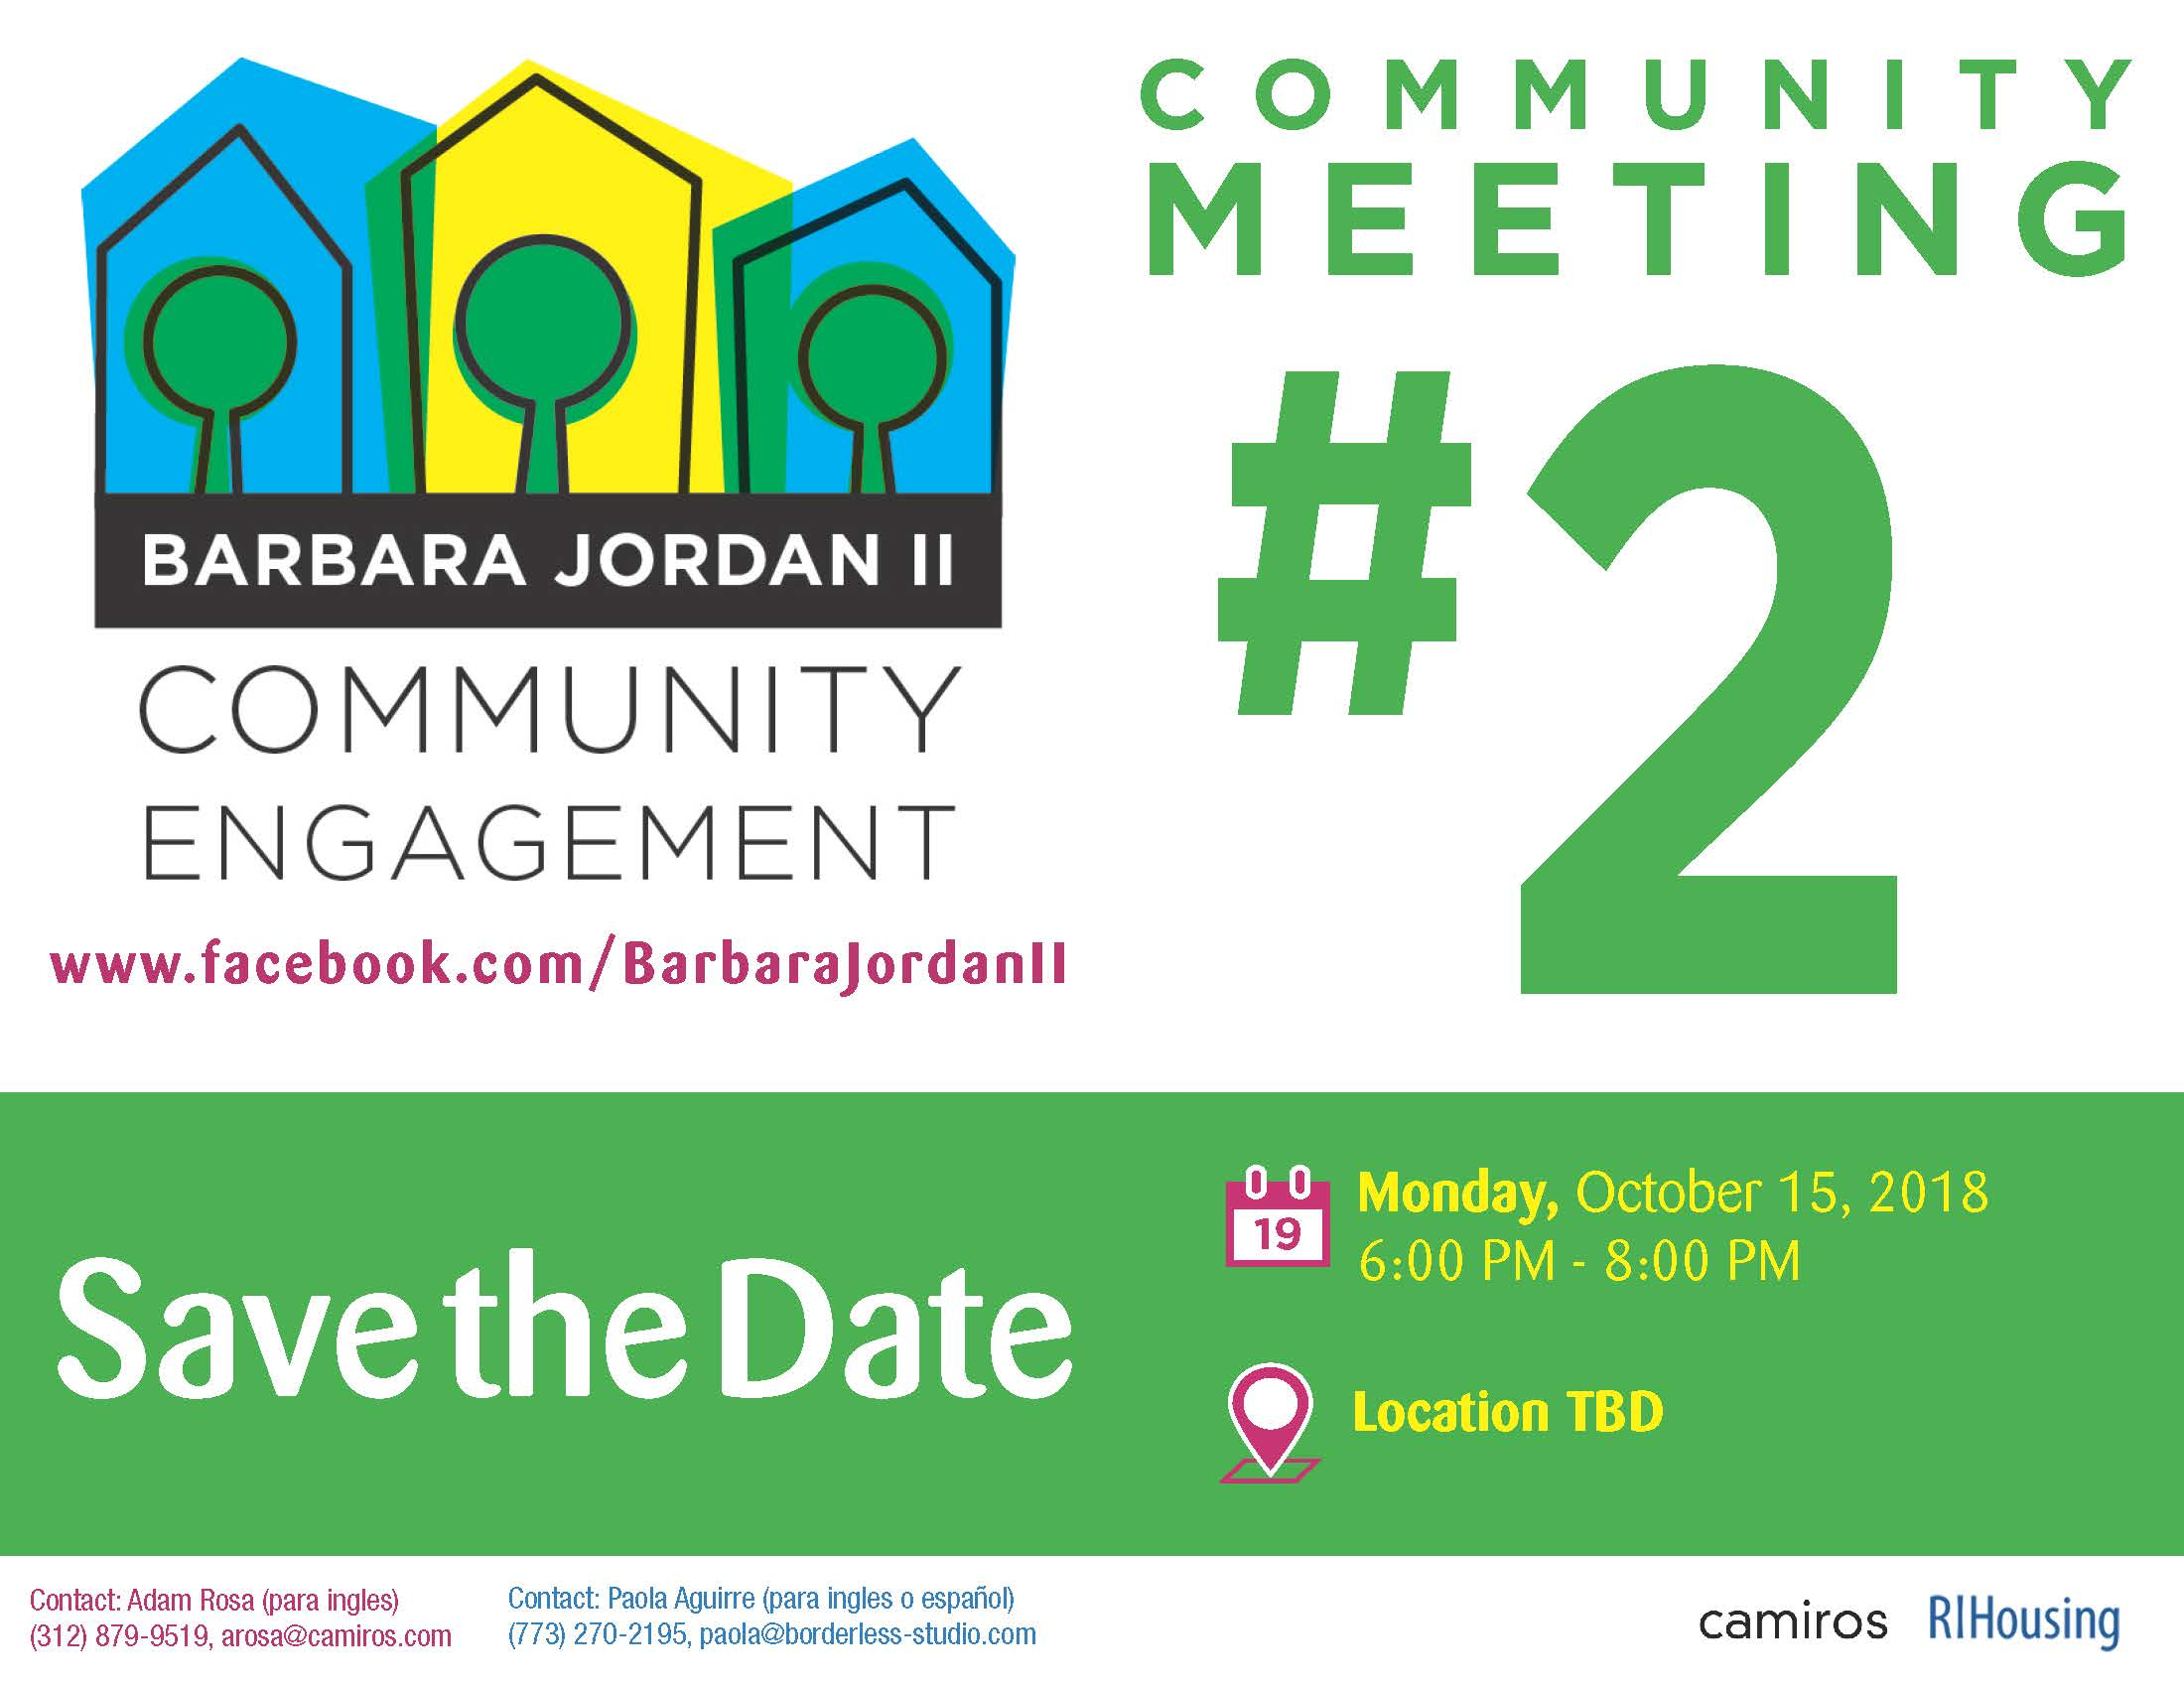 Barbara Jordan II: Community Meeting on 10/15